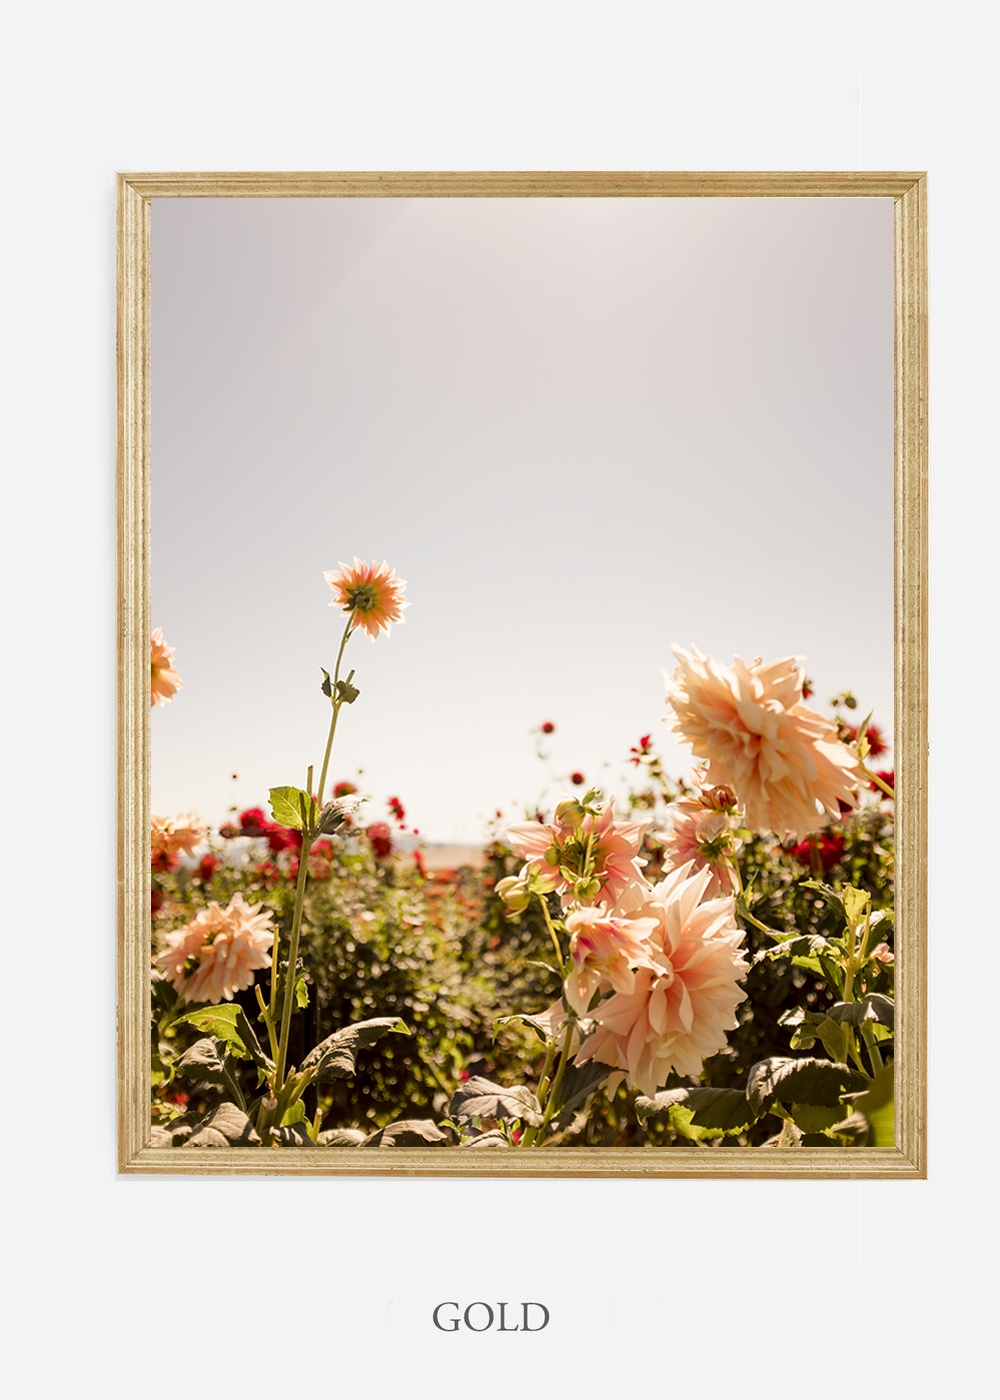 NoMat-Gold-Frame-DahliaNo.6-Wilder-California-Art-Floral-Home-decor-Prints-Dahlia-Botanical-Artwork-Interior-design.jpg